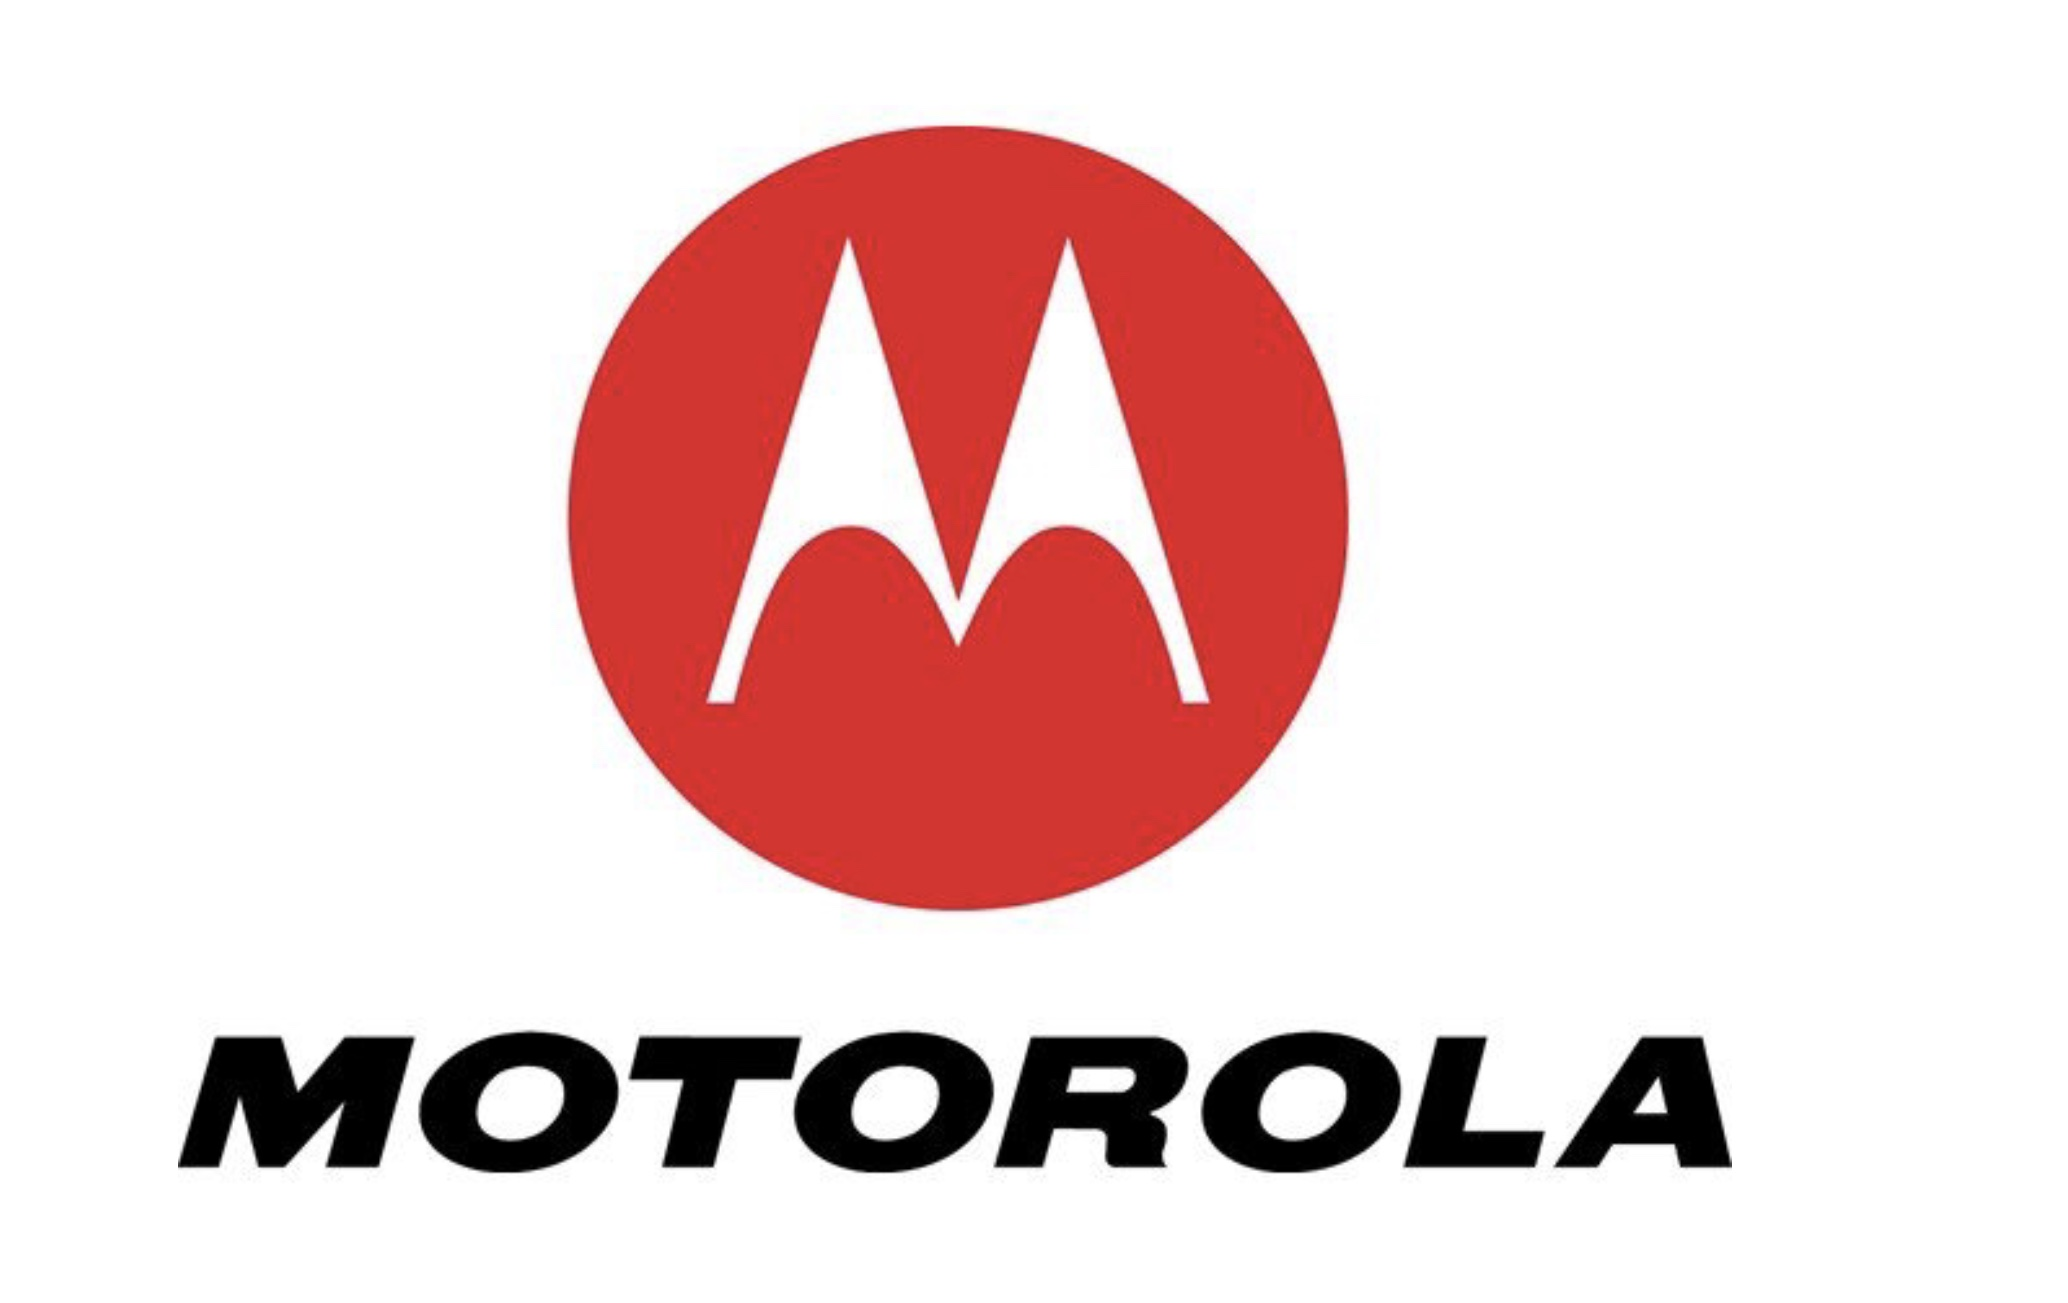 Motorola Announces Three New Devices